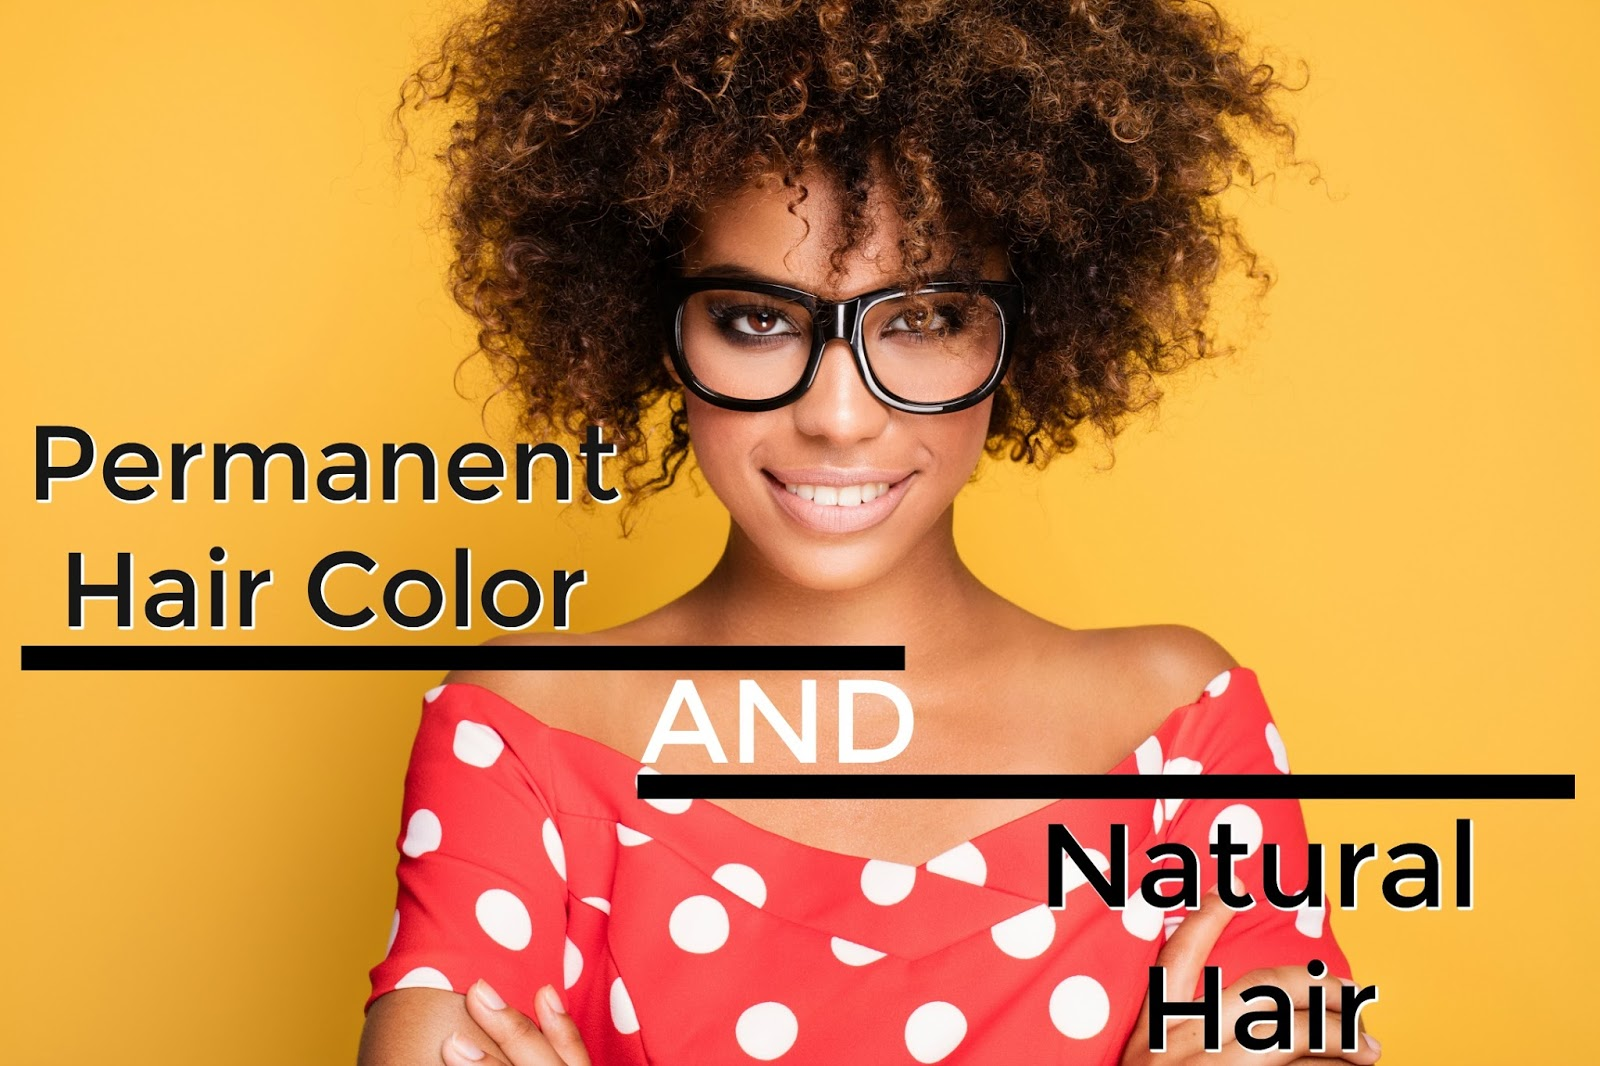 Permanent Hair Color And Natural Hair: What You Need To Know